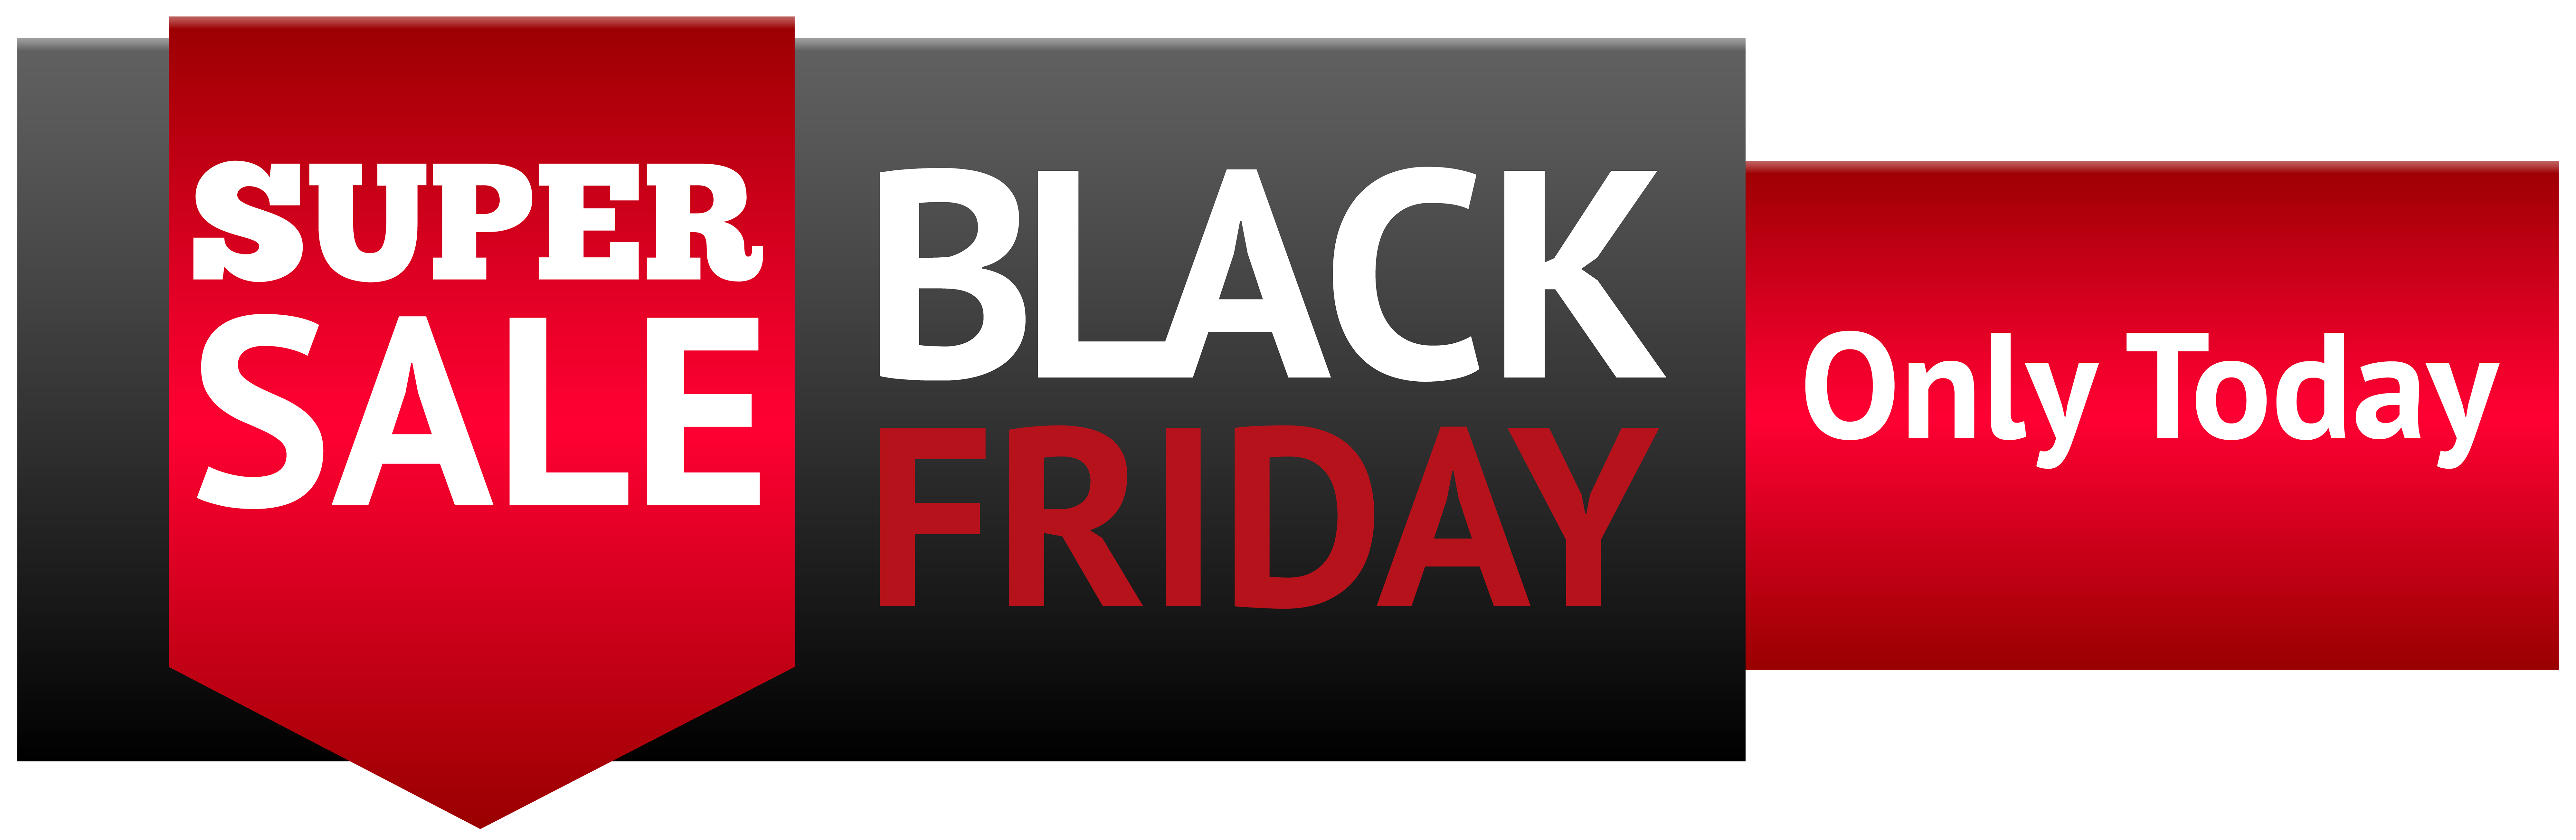 Black friday banner png. Image gallery yopriceville high